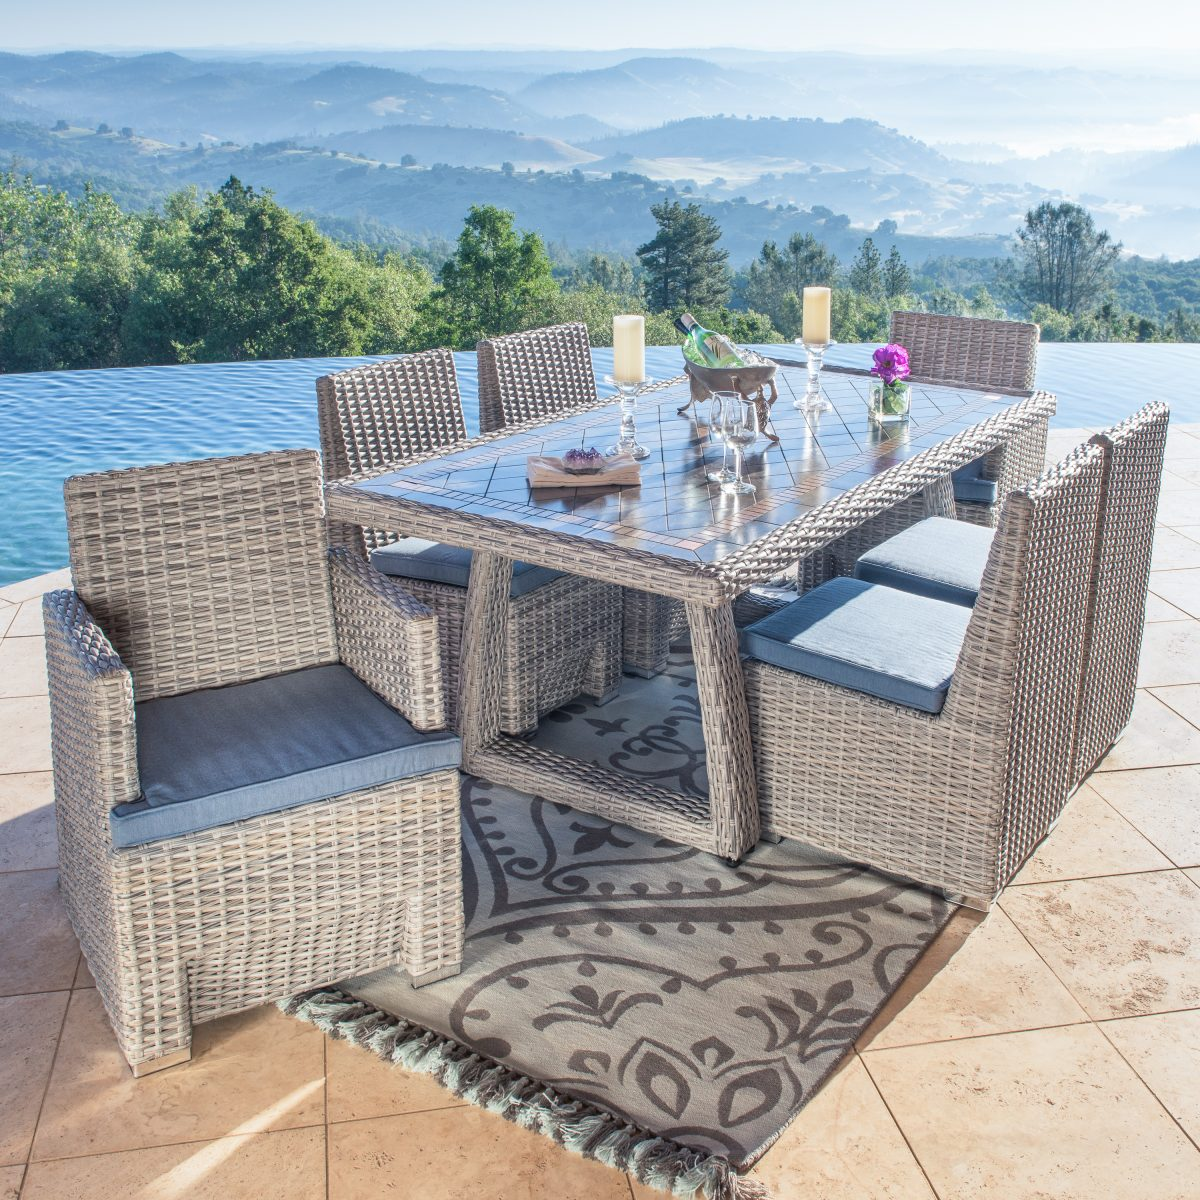 best outdoor dining chairs high chair for kitchen a guide to picking the set your backyard